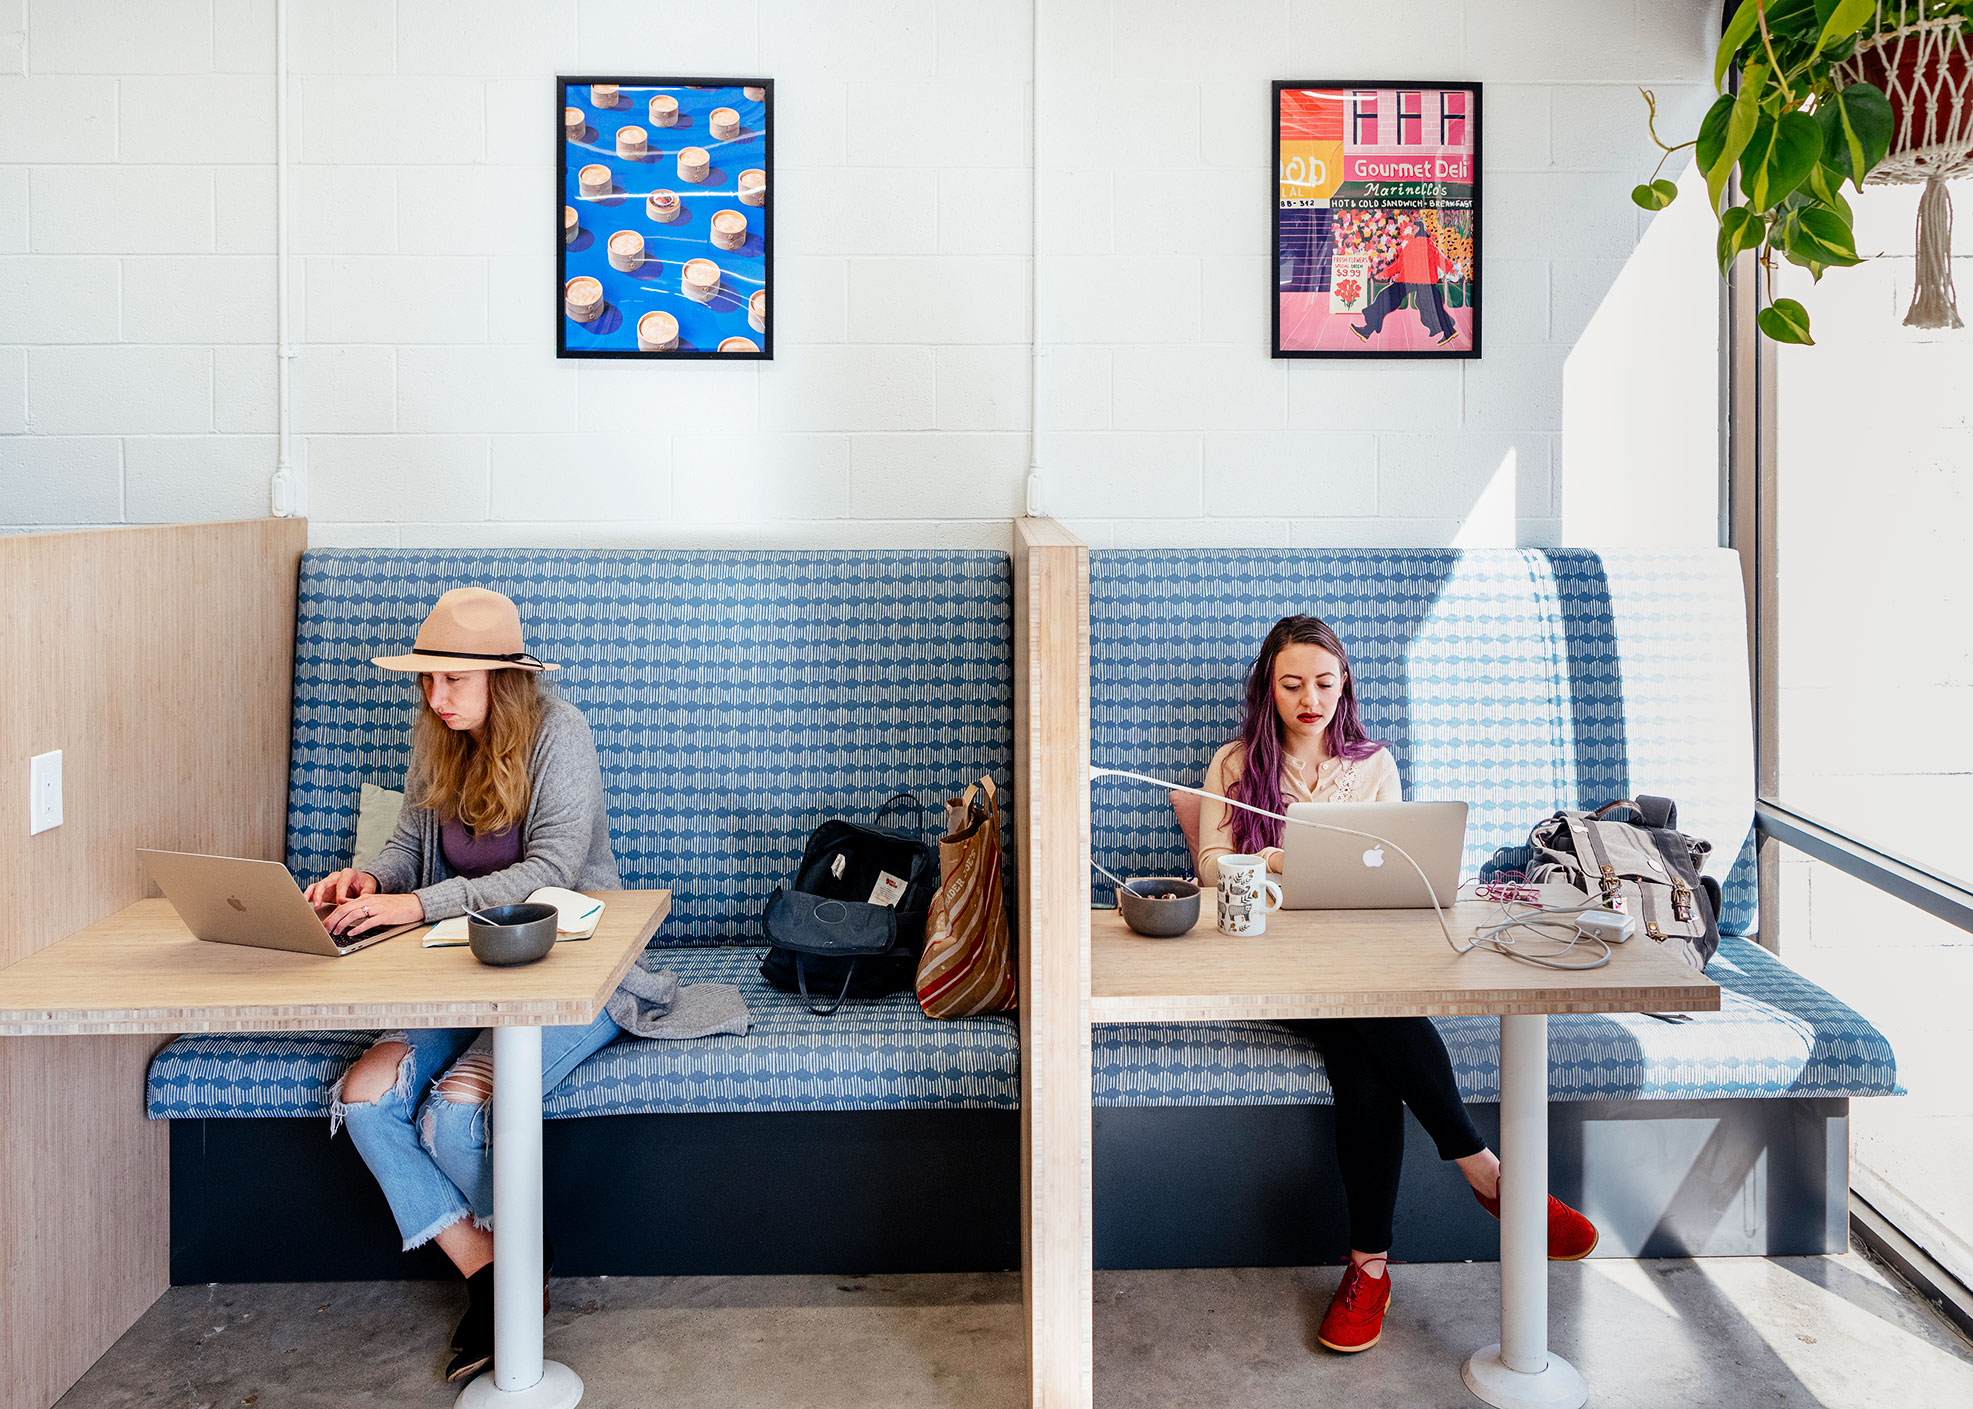 Leanne Robinson, left, and Shea Costales at Column Five on Jan. 23. The firm is trying new ways to help employees be productive while working at home.